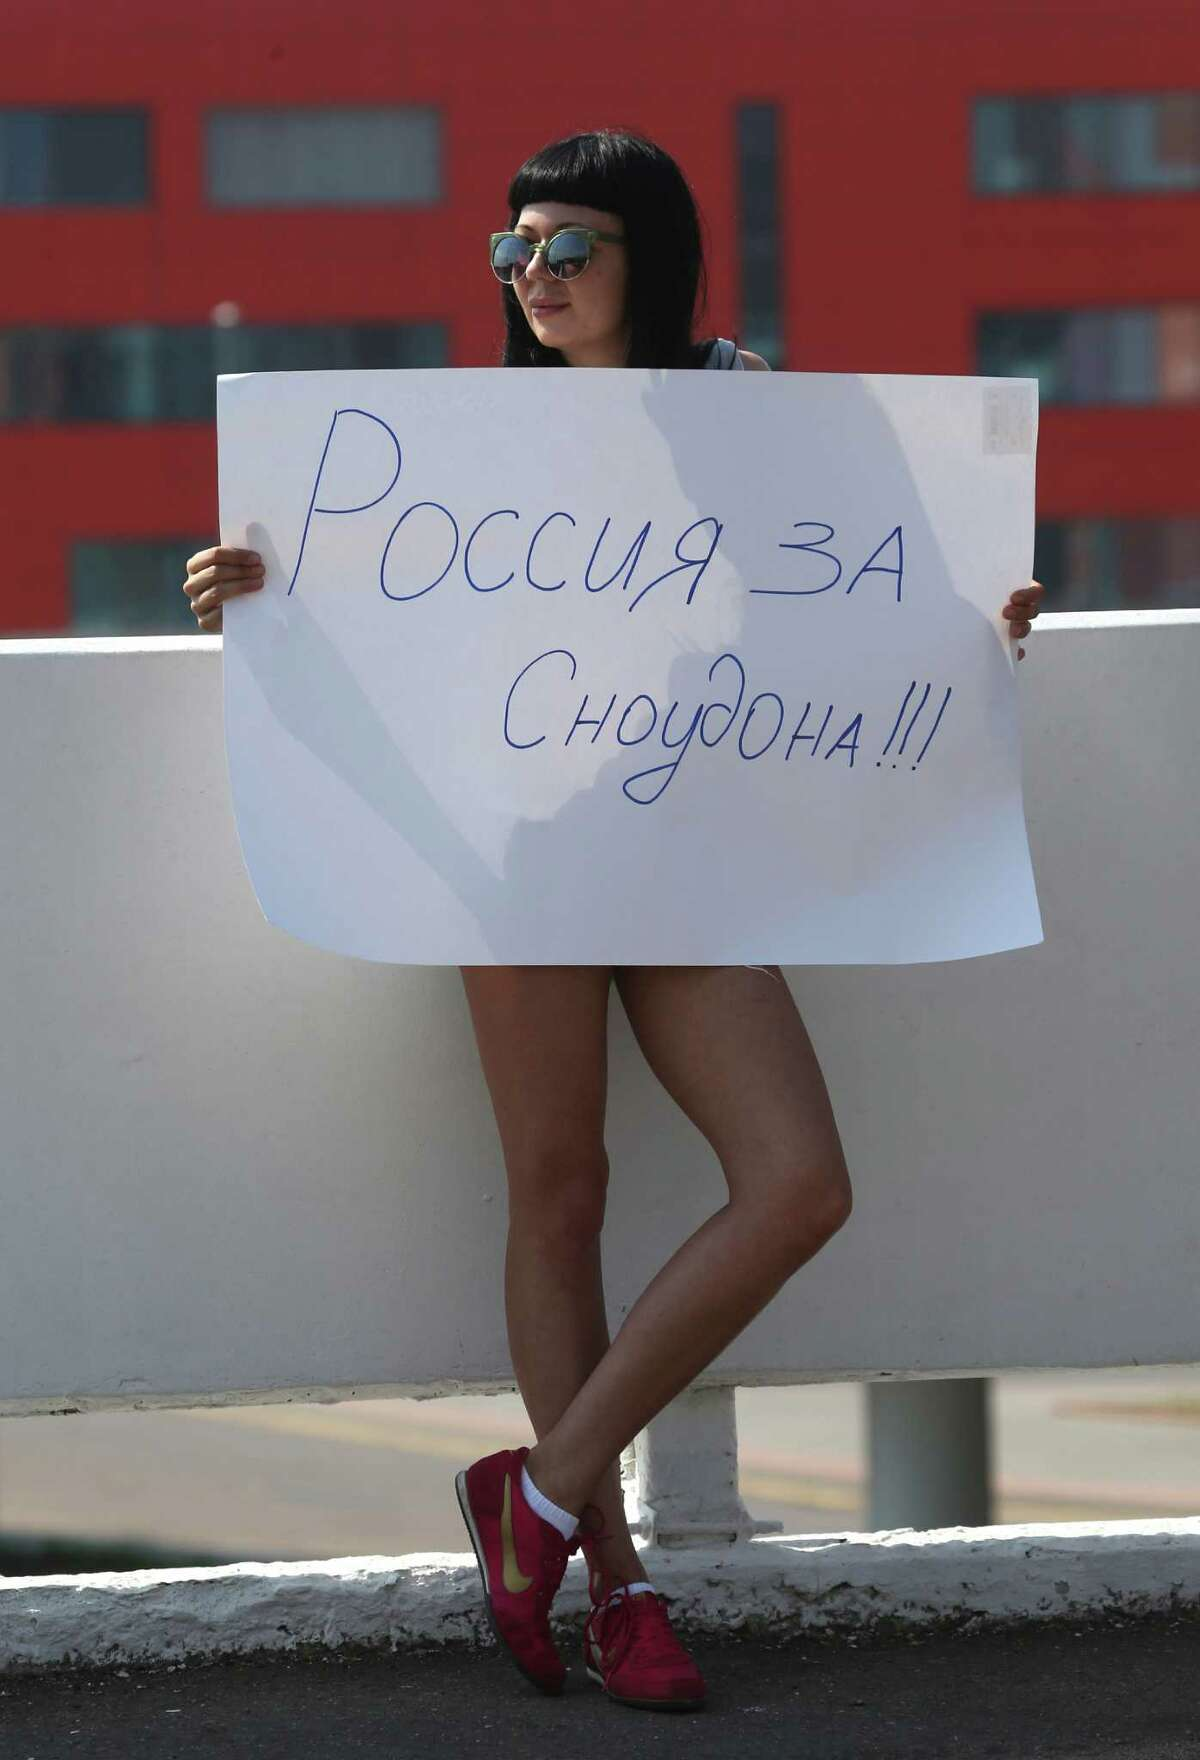 A Snowden supporter holds a poster outside Sheremetyevo, airport in Moscow Friday, June 28, 2013. Russian and foreign journalists continued to monitor the Sheremetyevo international airport, where National Security Agency leaker Edward Snowden is believed to remain at the transit zone. The poster reads: